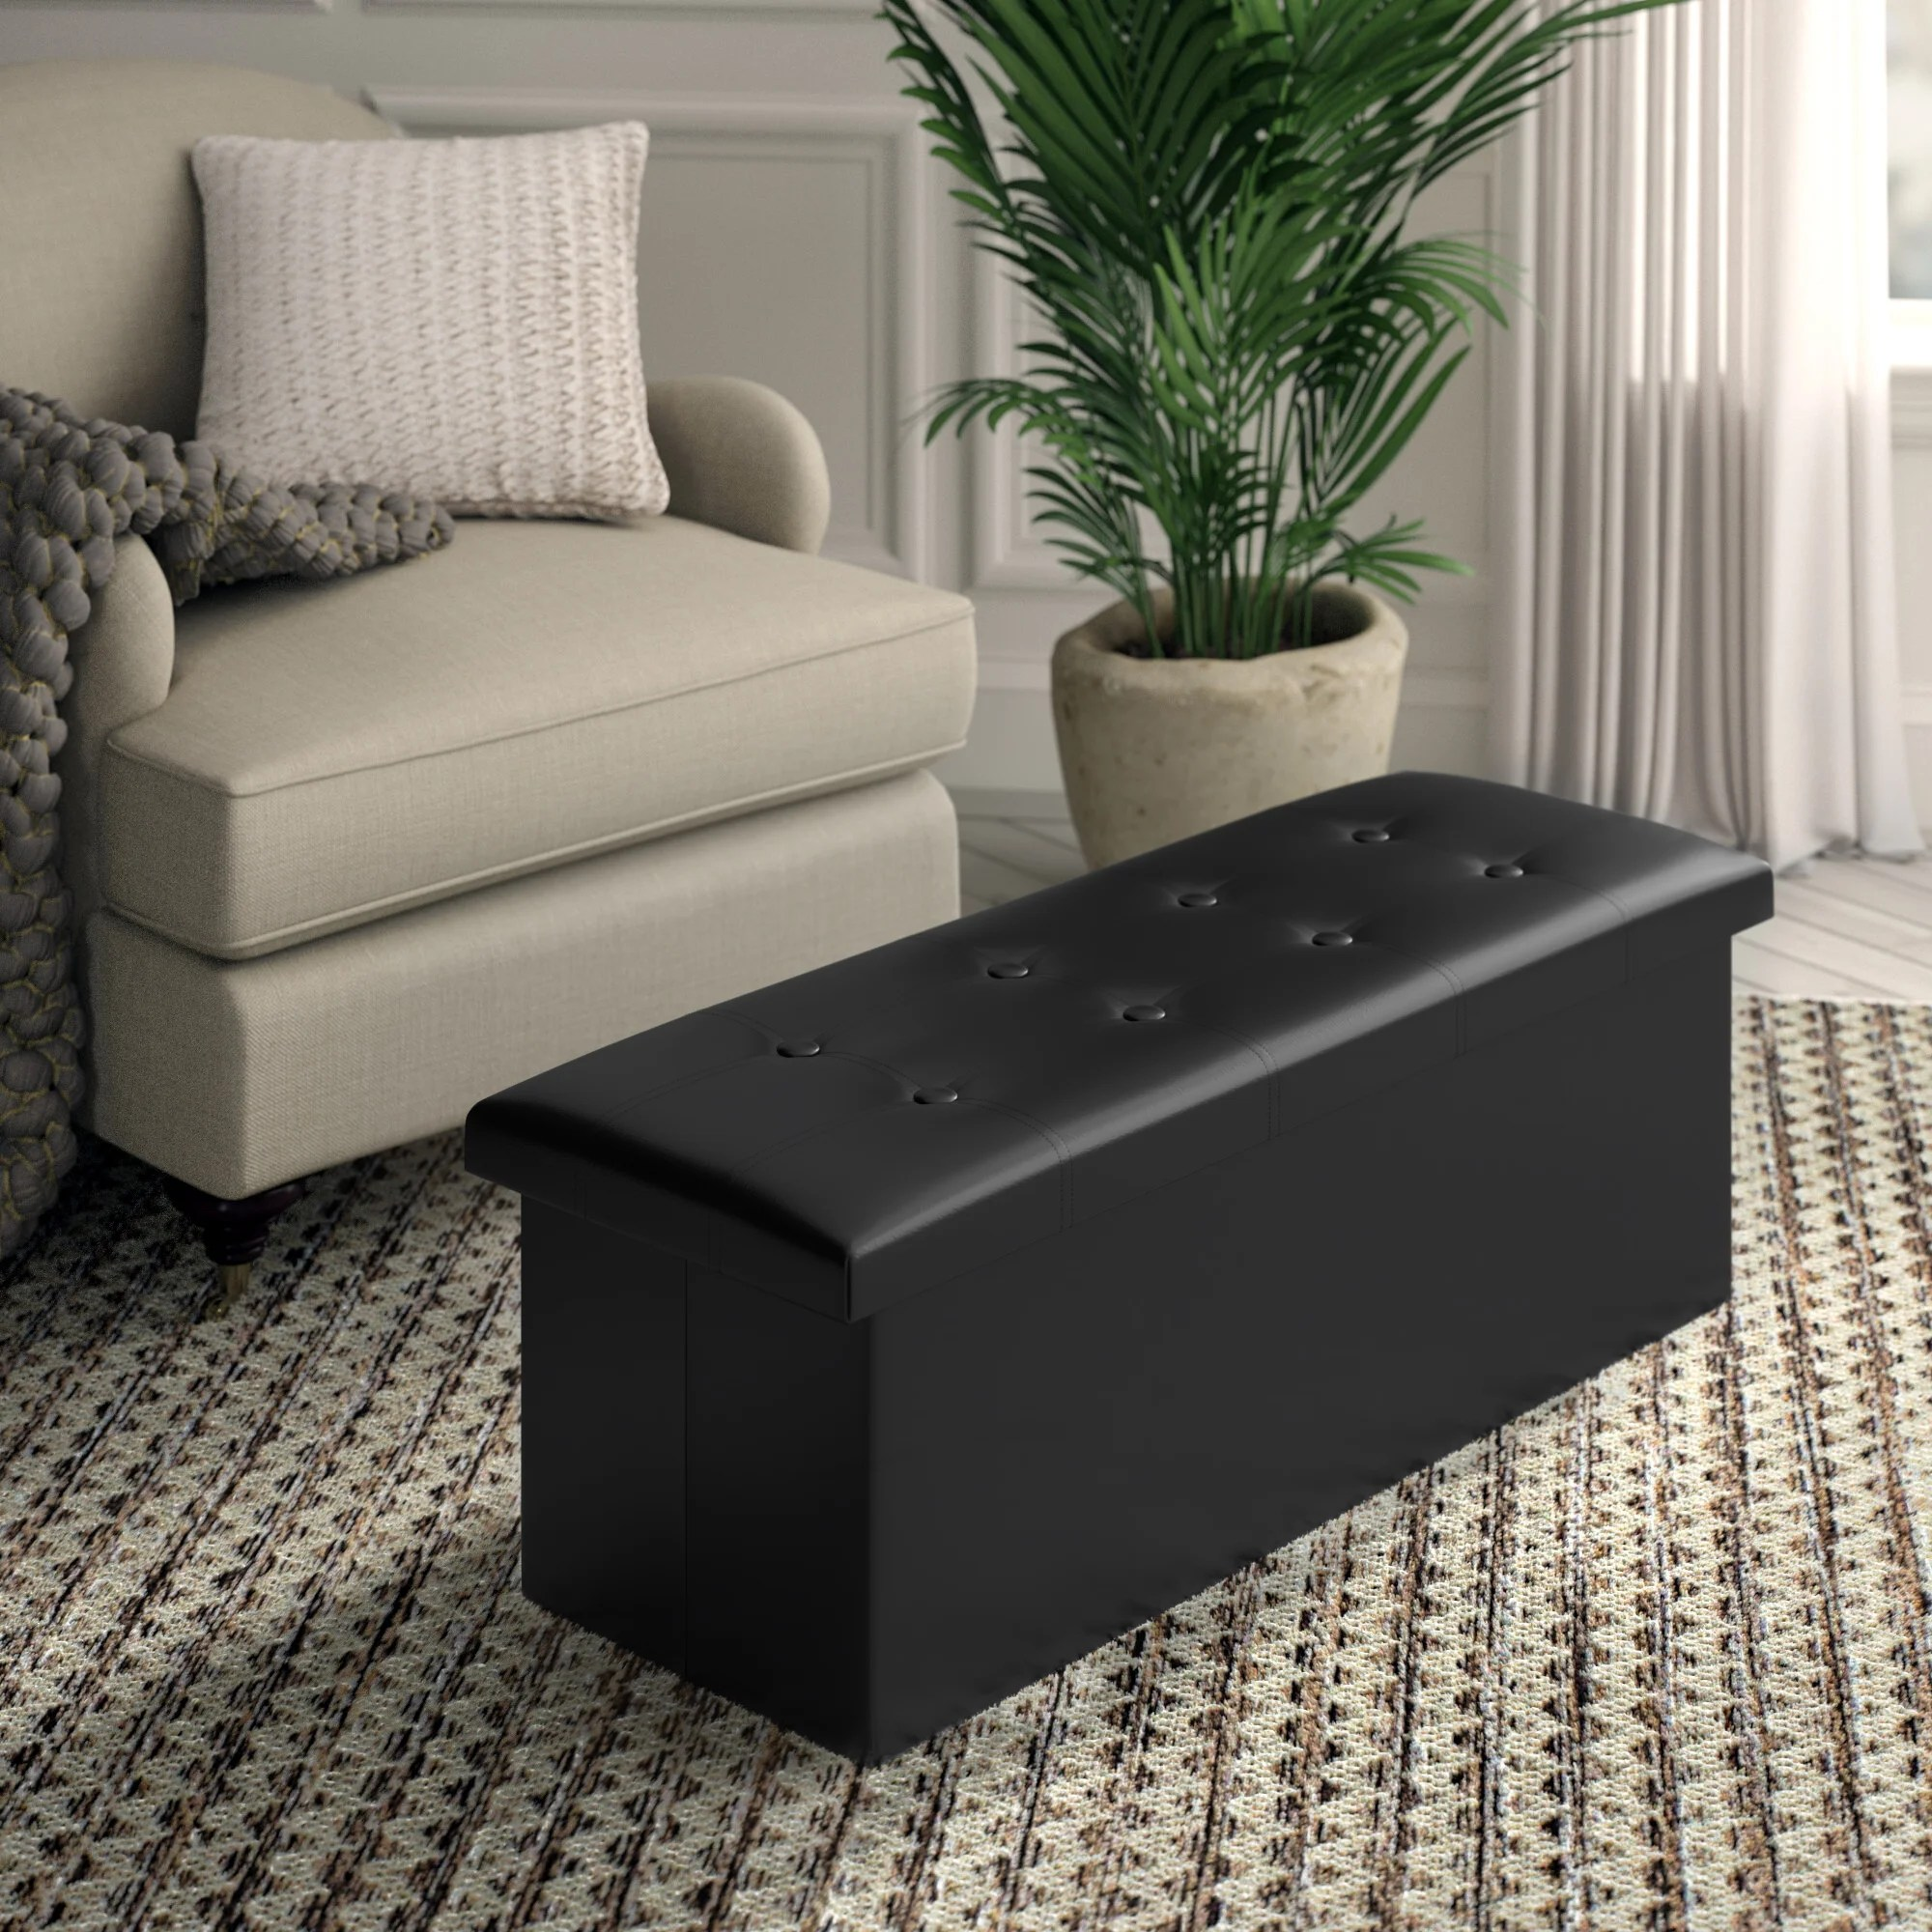 large ottomans free shipping over 35